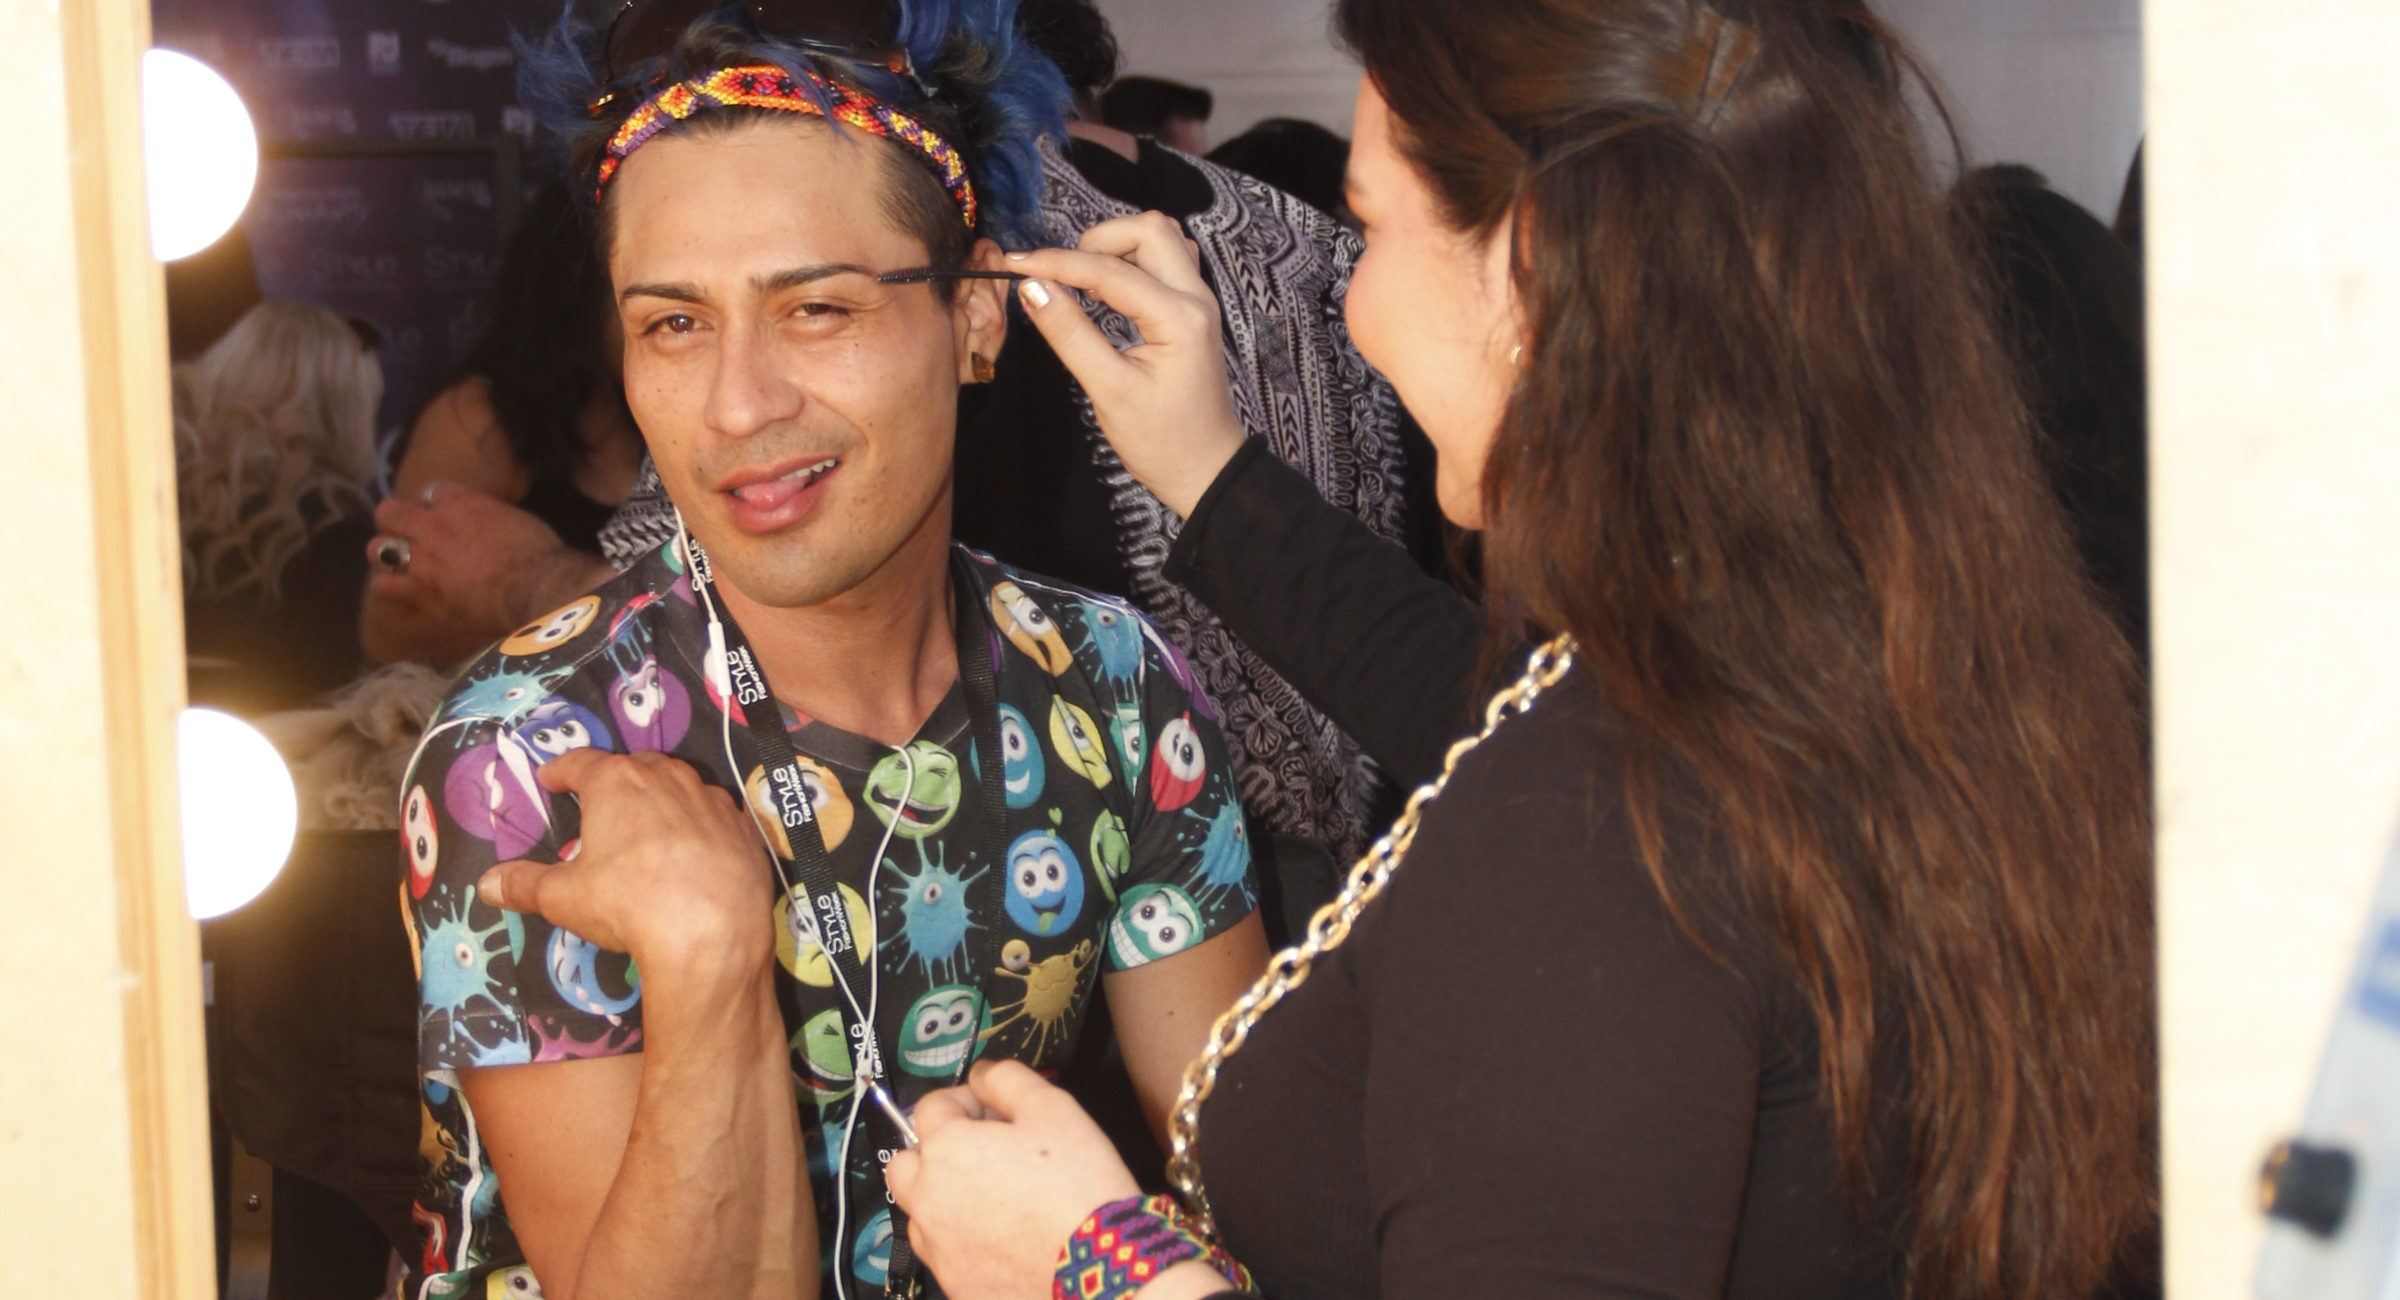 D Jesus Eyebrow time Style Fashion Week 4Chion Lifestyle